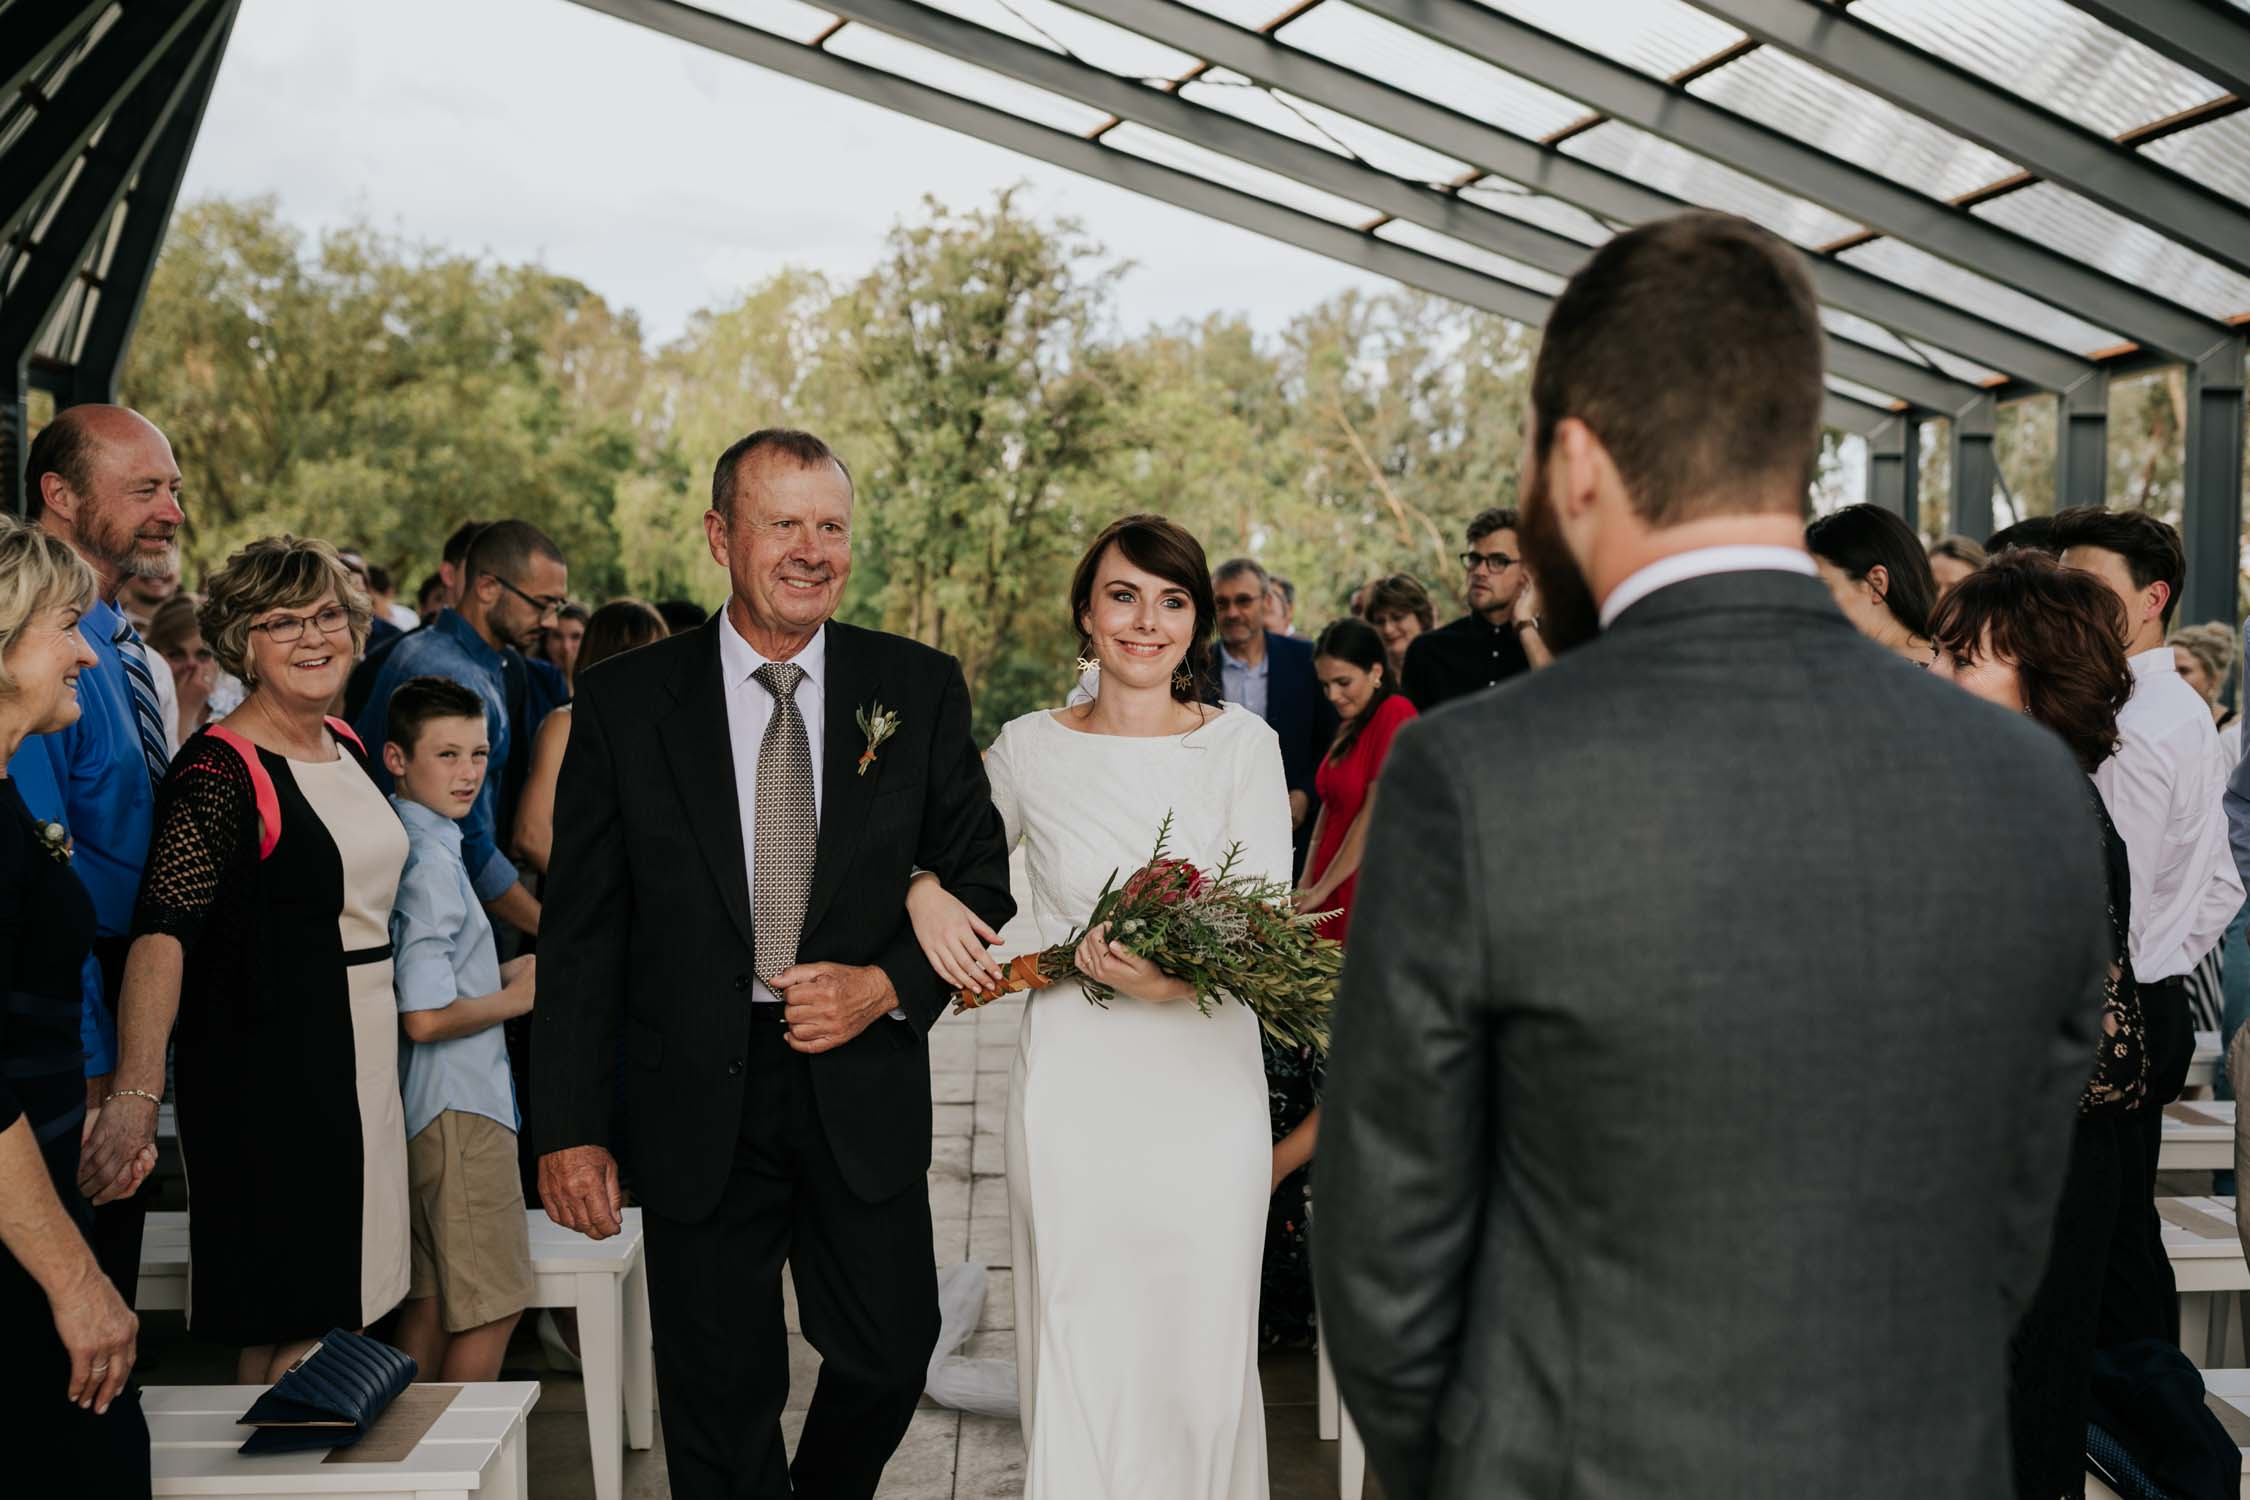 Emotional wedding moment when bride and father meet groom at the top of the aisle